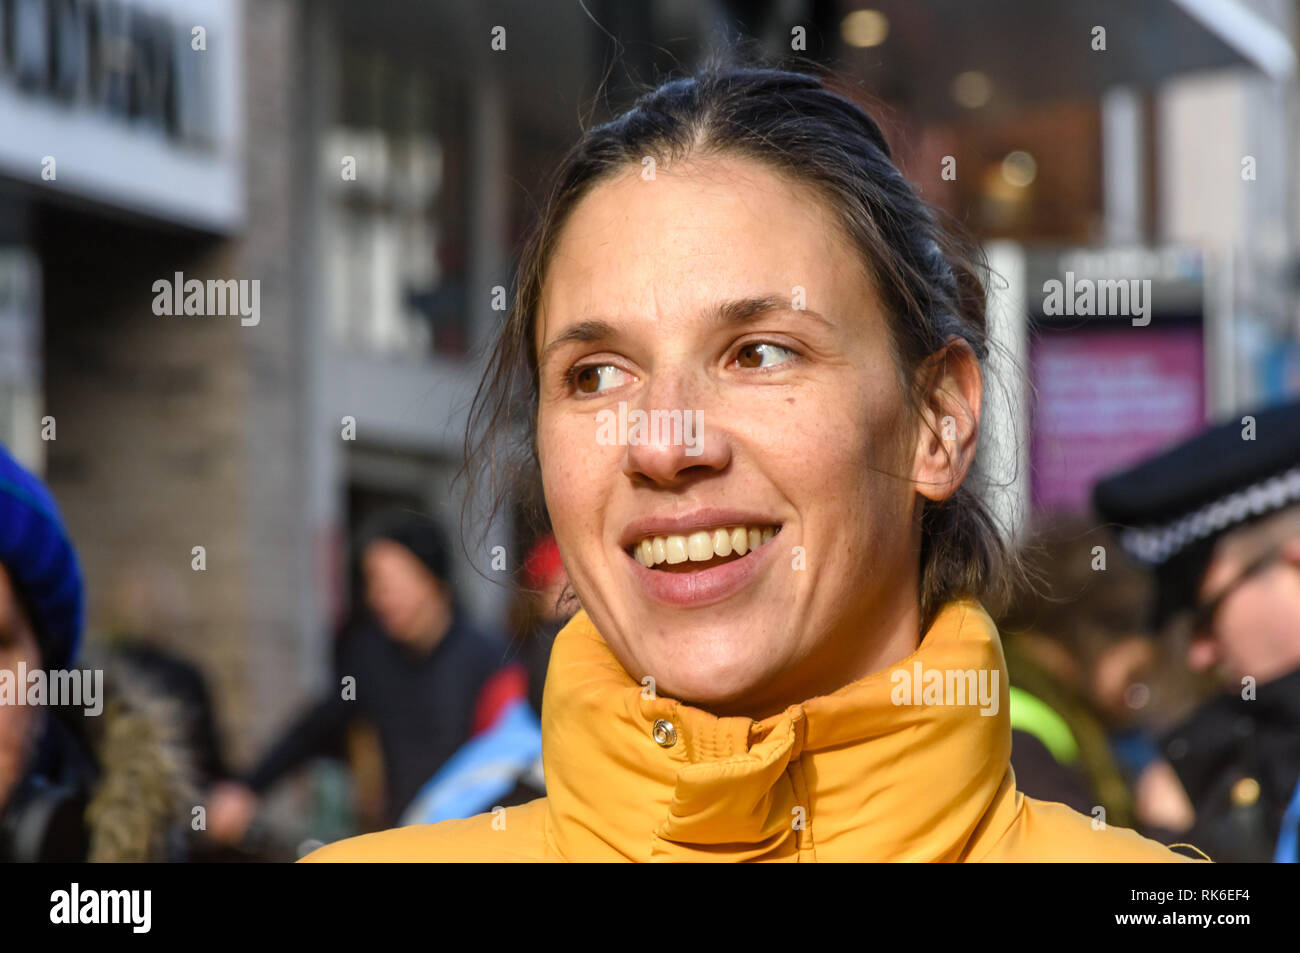 London, UK. 9th February 2019. woman from Plastic Free Hackney waits to speak at the Extinction Rebellionstreet party blocking the A10 Kingsland High St in Dalston for two housrs with speeches, music and spoken word performances, t-shirt printing, face painting and free food, with dancing to a samba band which led them for a brief march up the road before returning to continue the protest in Gillett Square.  XR is in open Rebellion against the UK Government for its criminal inaction in the face of impending climate and ecological collapse.  Peter Marshall/Alamy Live News - Stock Image